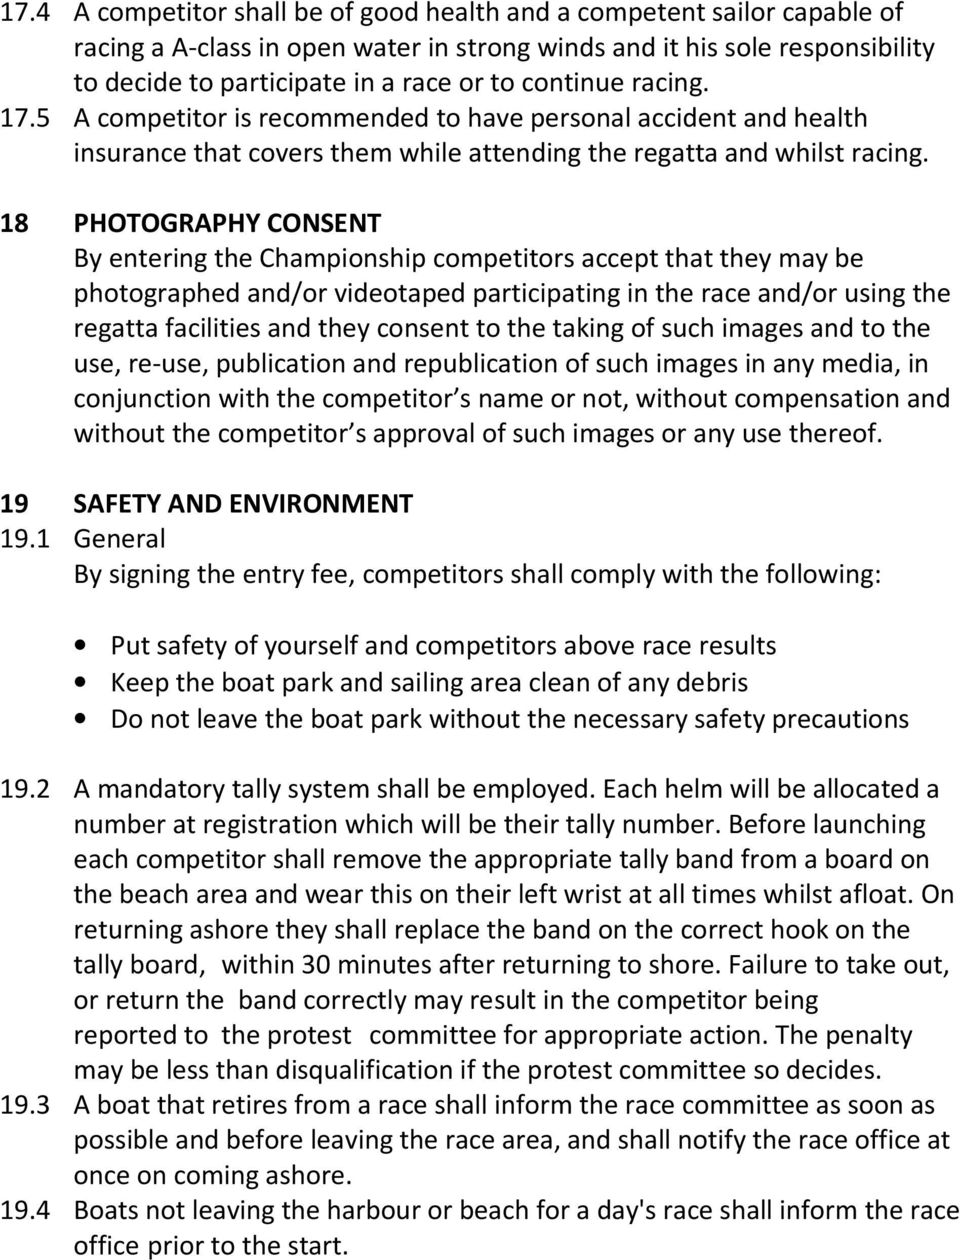 18 PHOTOGRAPHY CONSENT By entering the Championship competitors accept that they may be photographed and/or videotaped participating in the race and/or using the regatta facilities and they consent